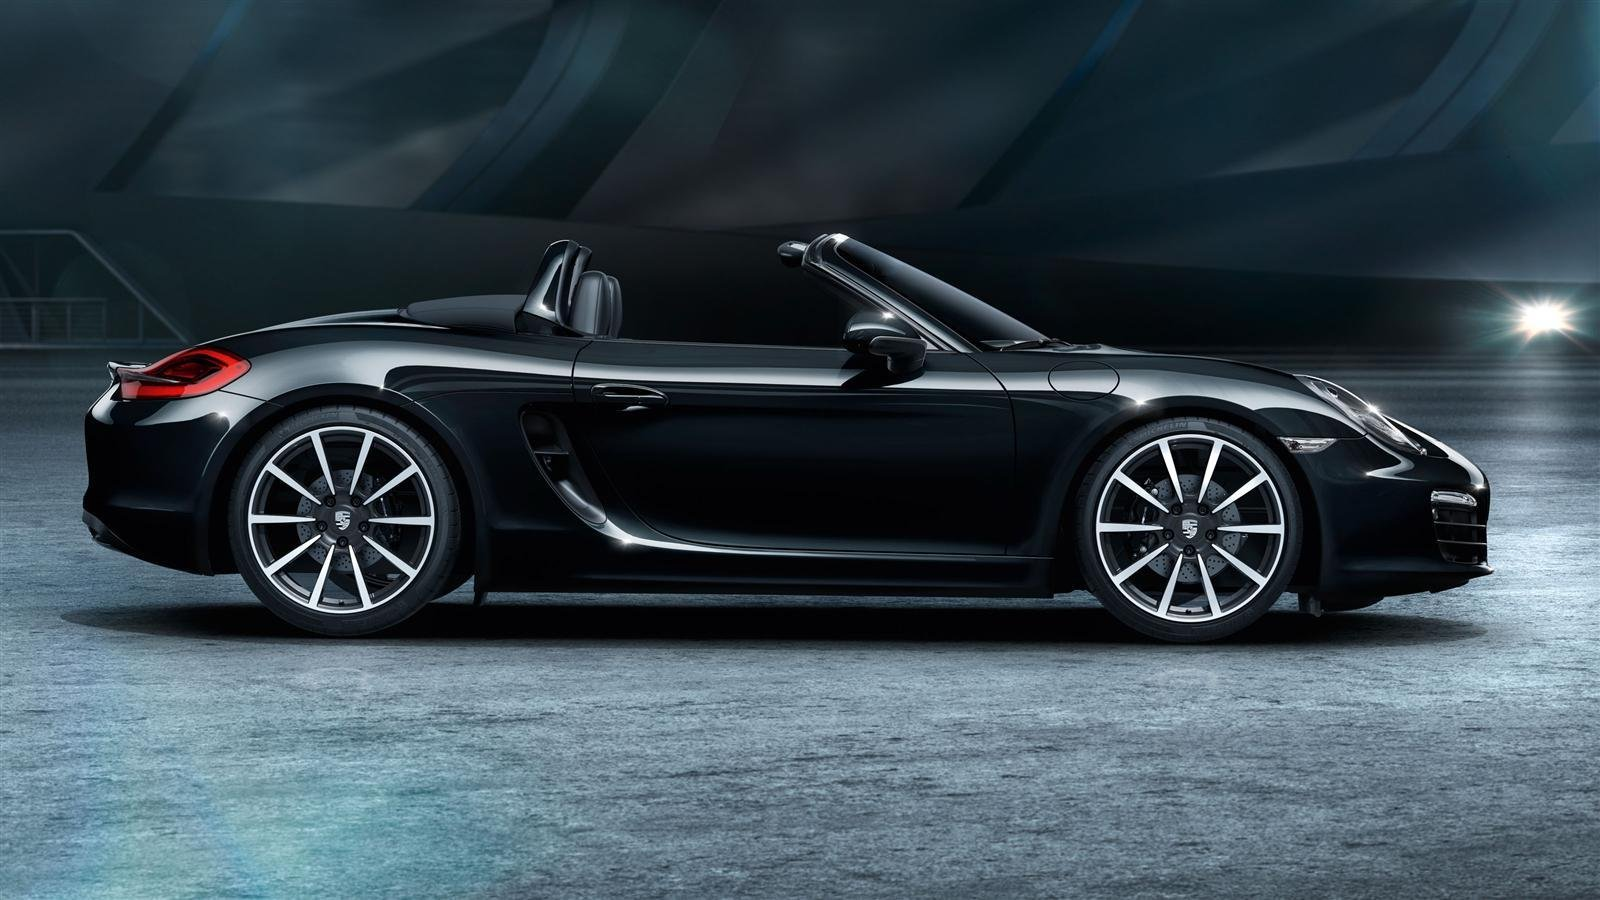 2016 porsche boxster black edition picture 630484 car review top speed. Black Bedroom Furniture Sets. Home Design Ideas